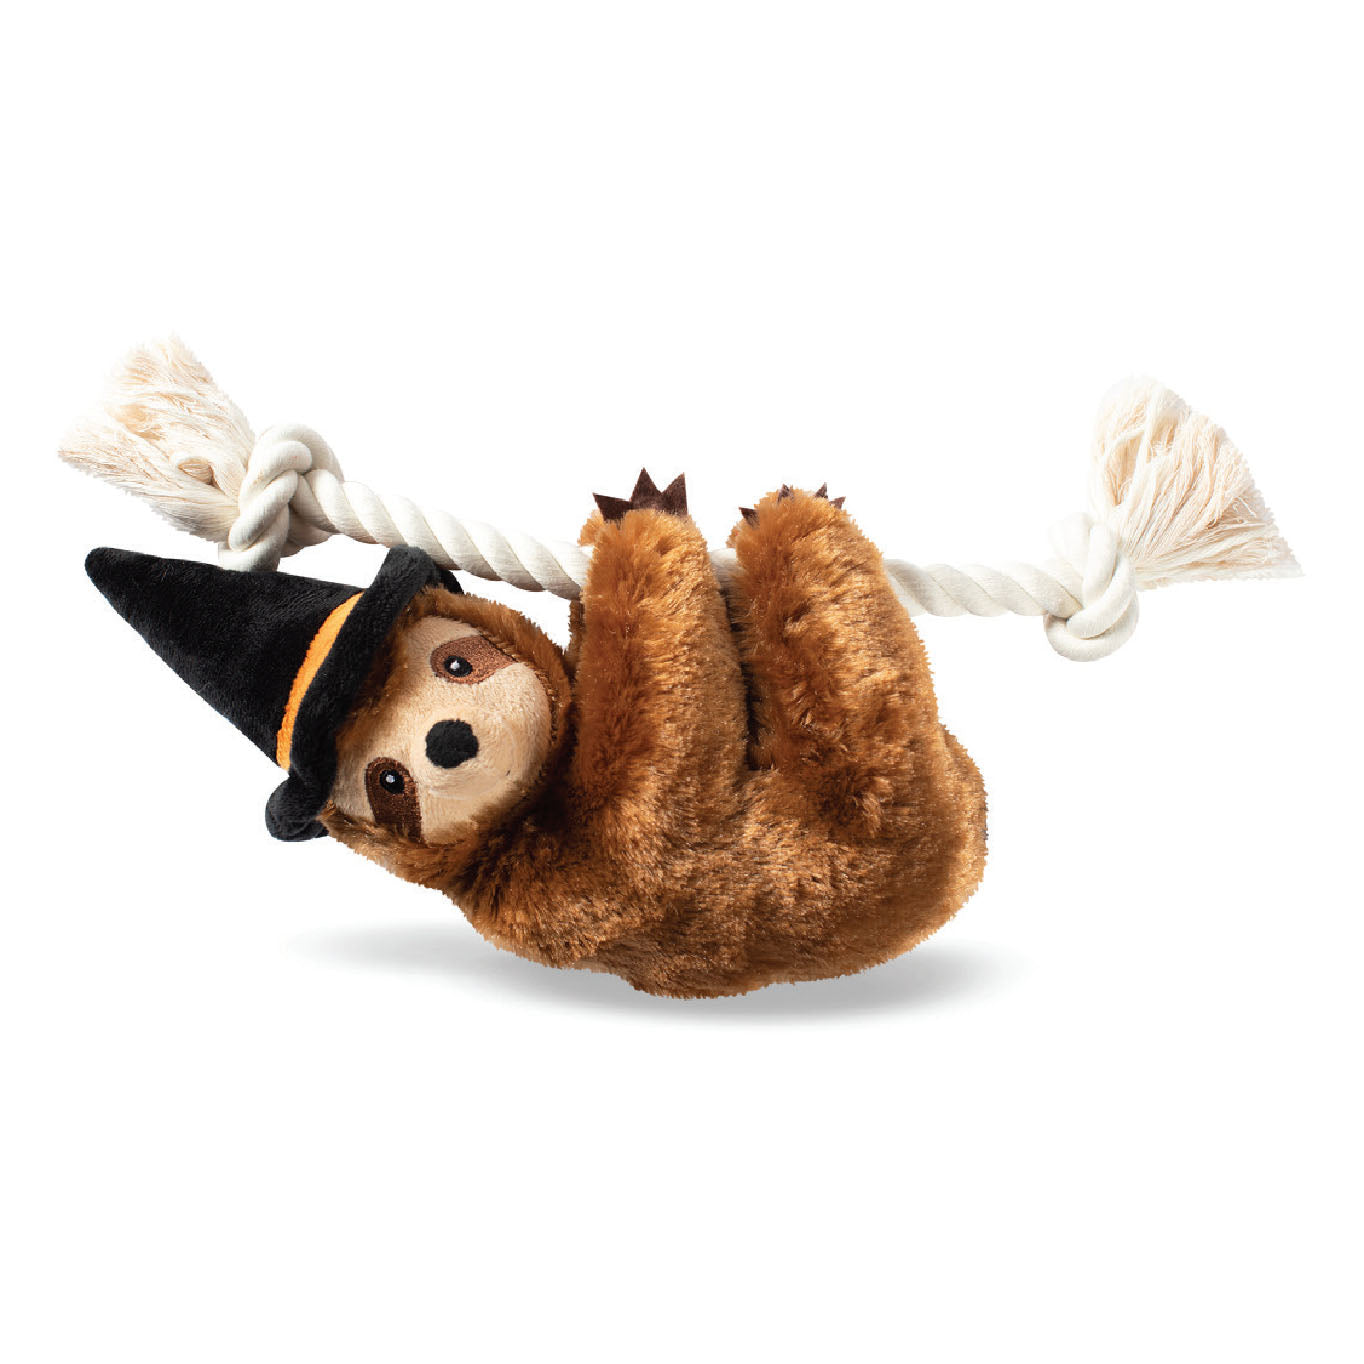 Pet Boutique - Dog Toy - Witchy Sloth on a Rope Dog Toy